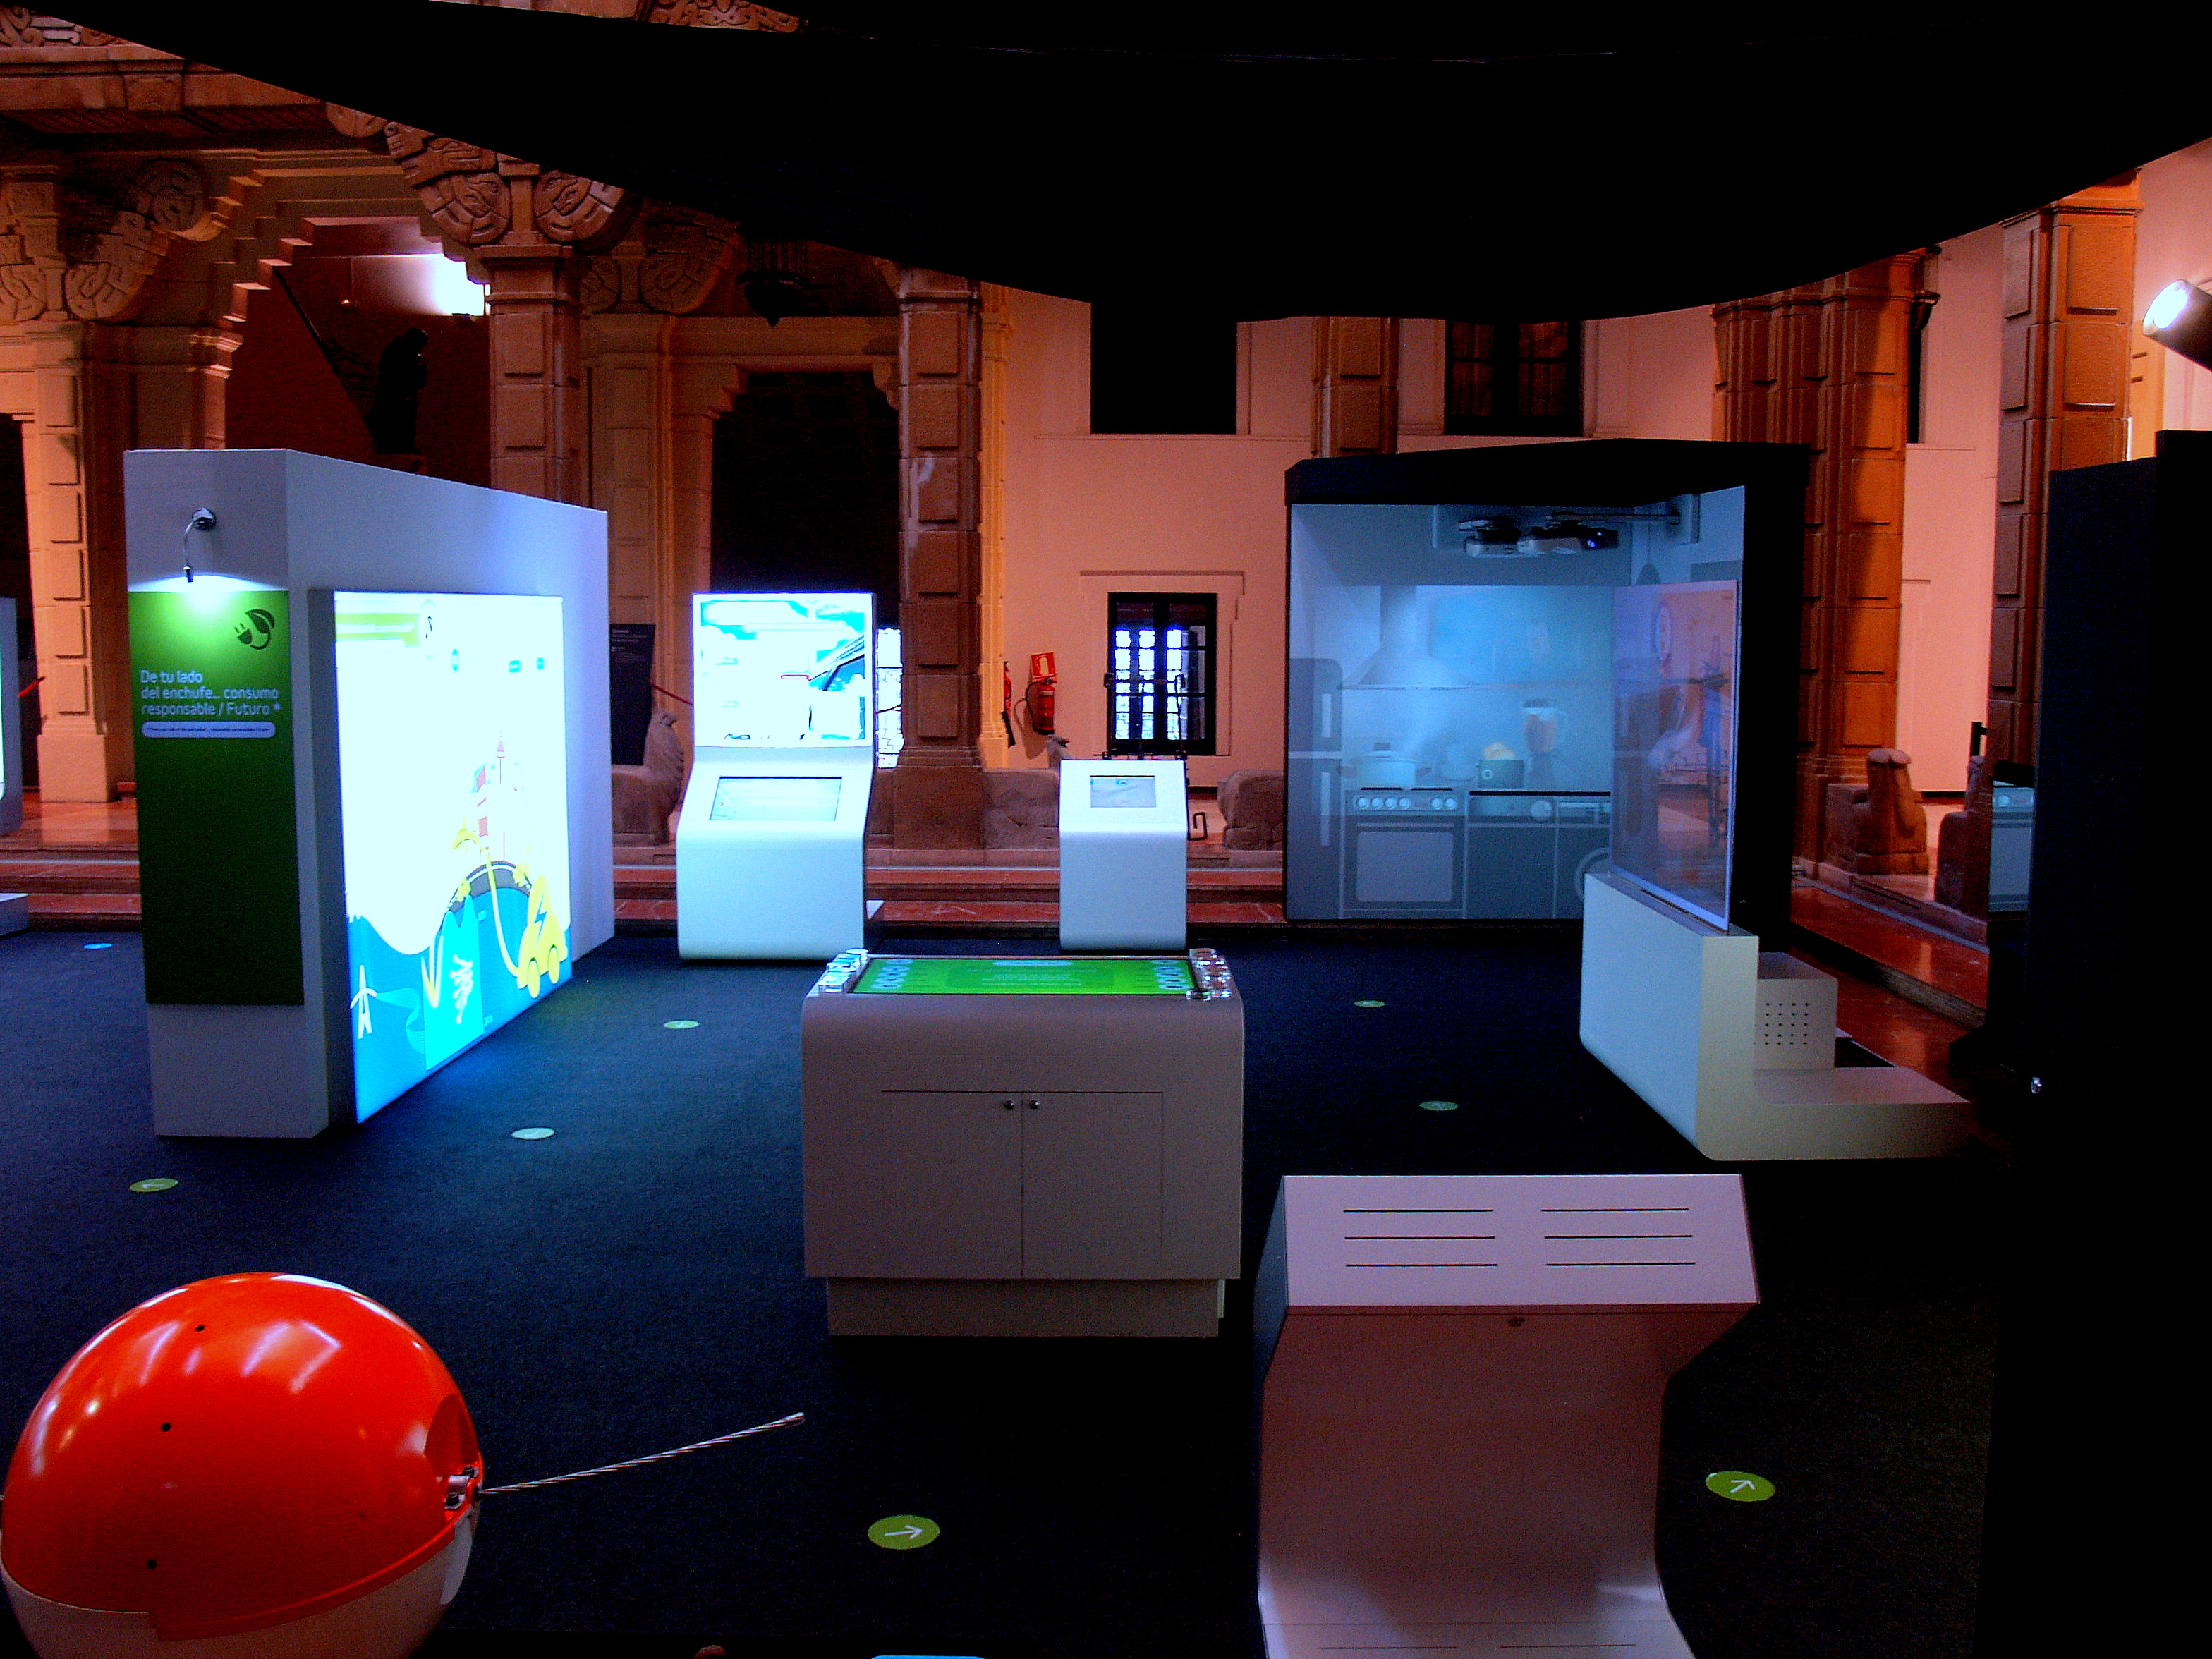 Picture of the third section of the exhibition, dedicated to electrical consumption